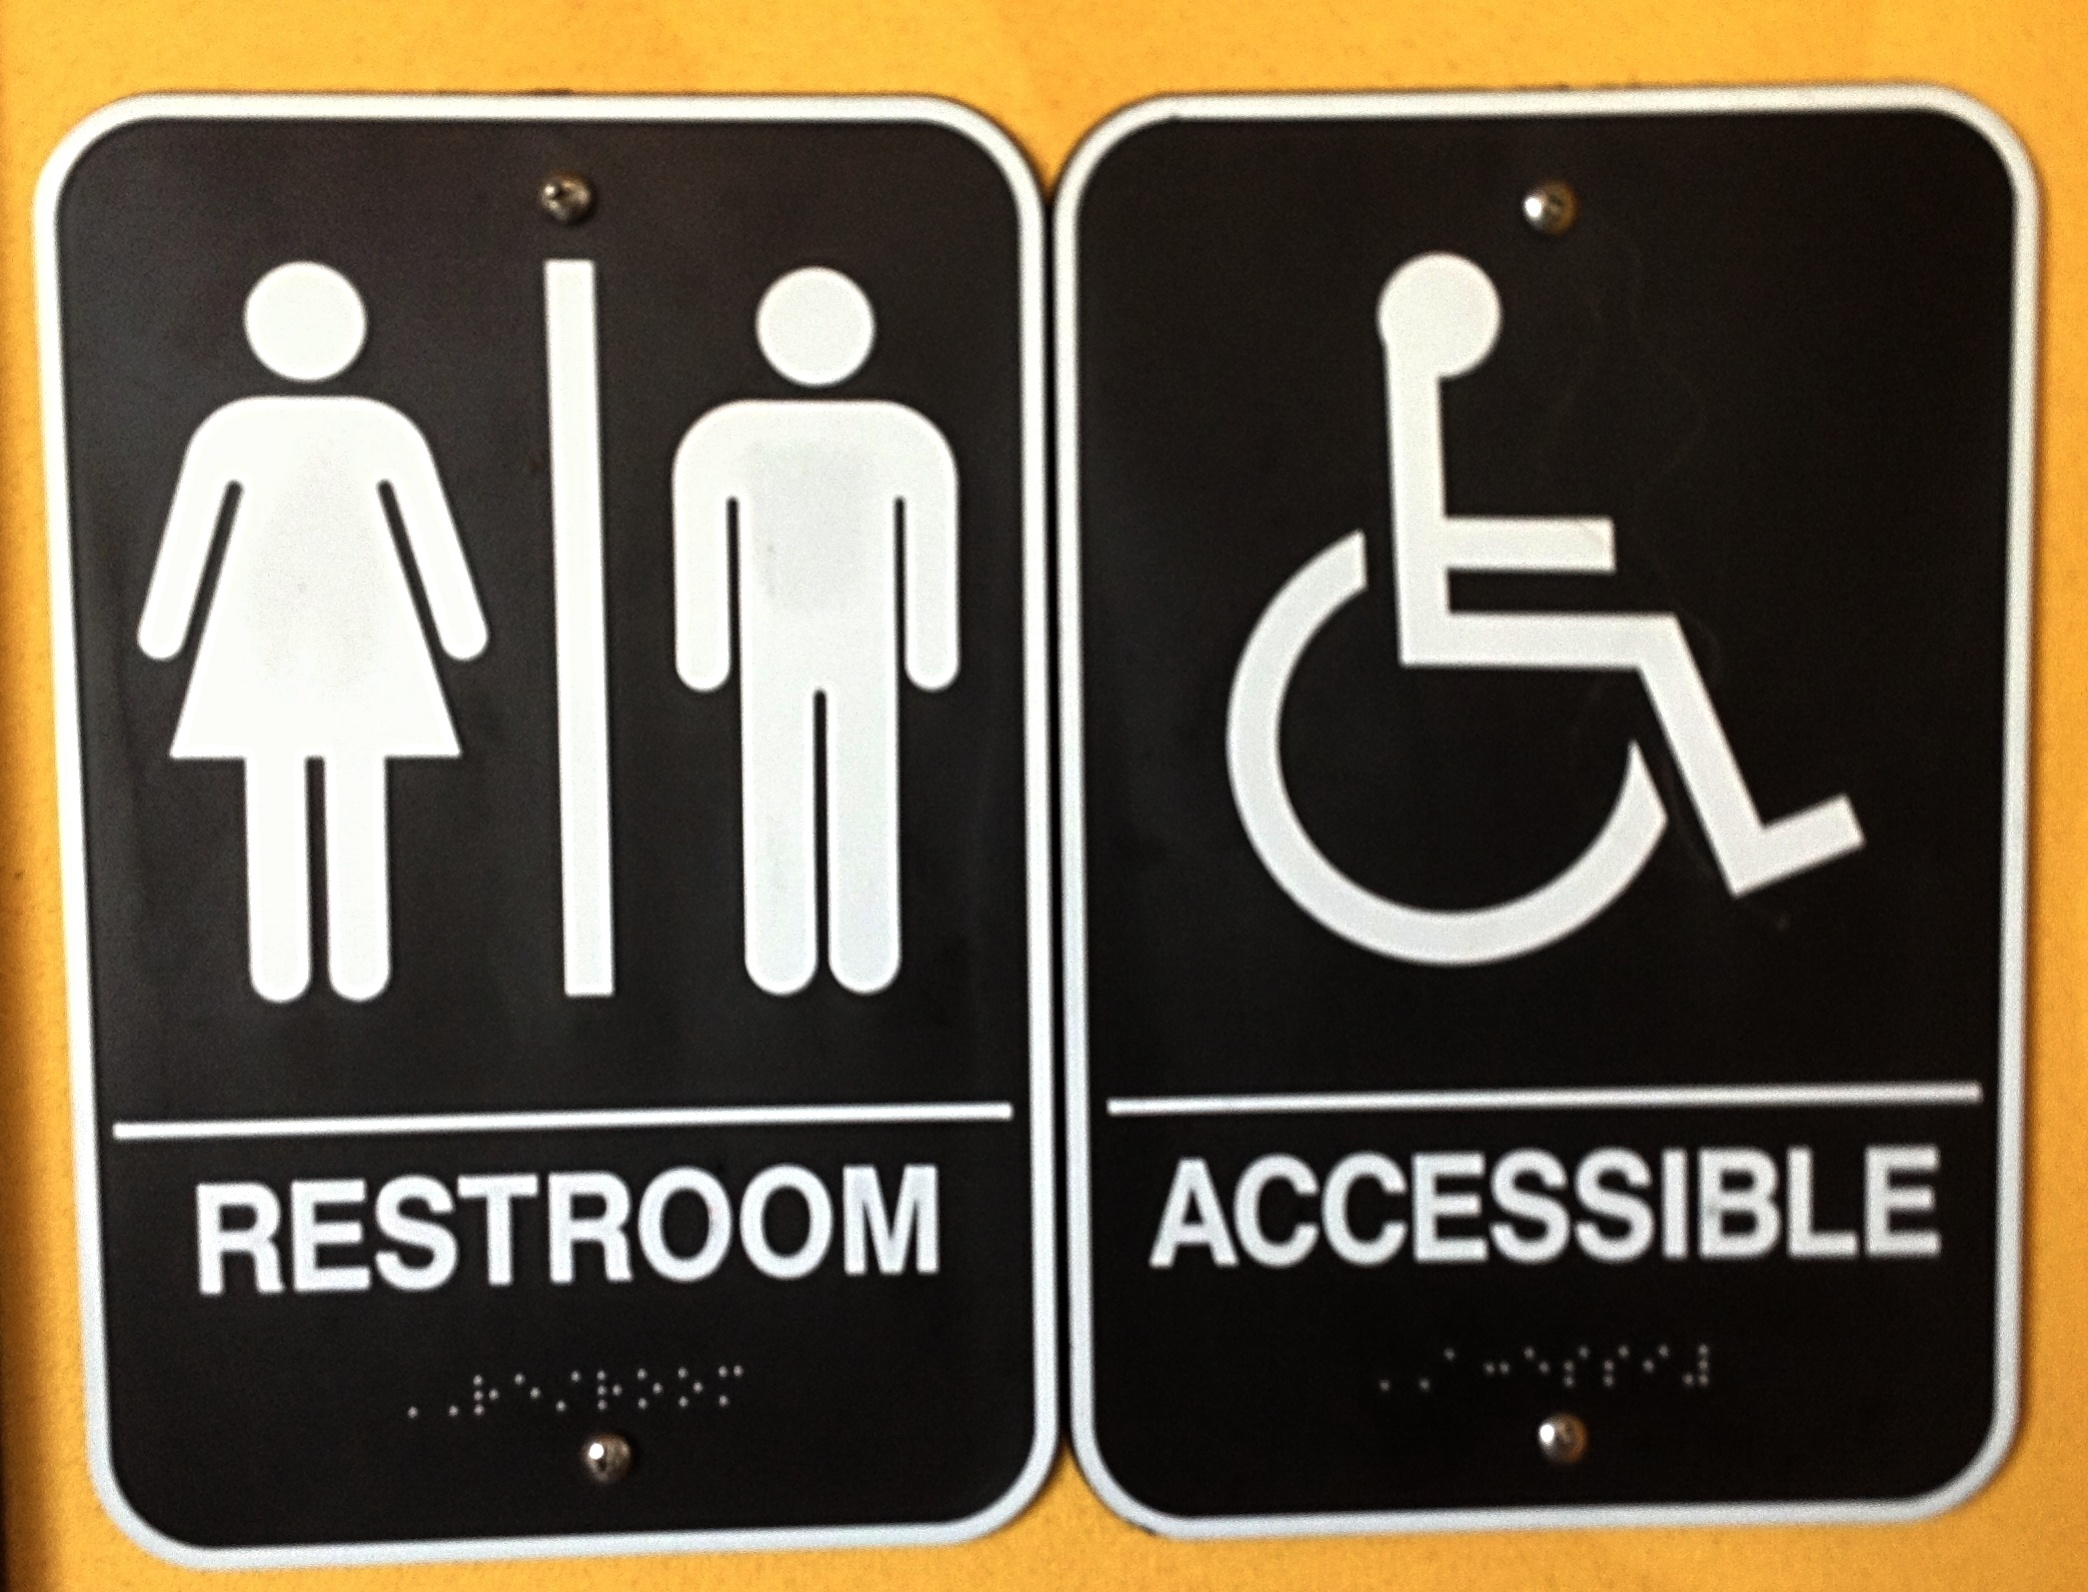 Commonly Overlooked ADA Bathroom Requirements - Bathroom directional signs